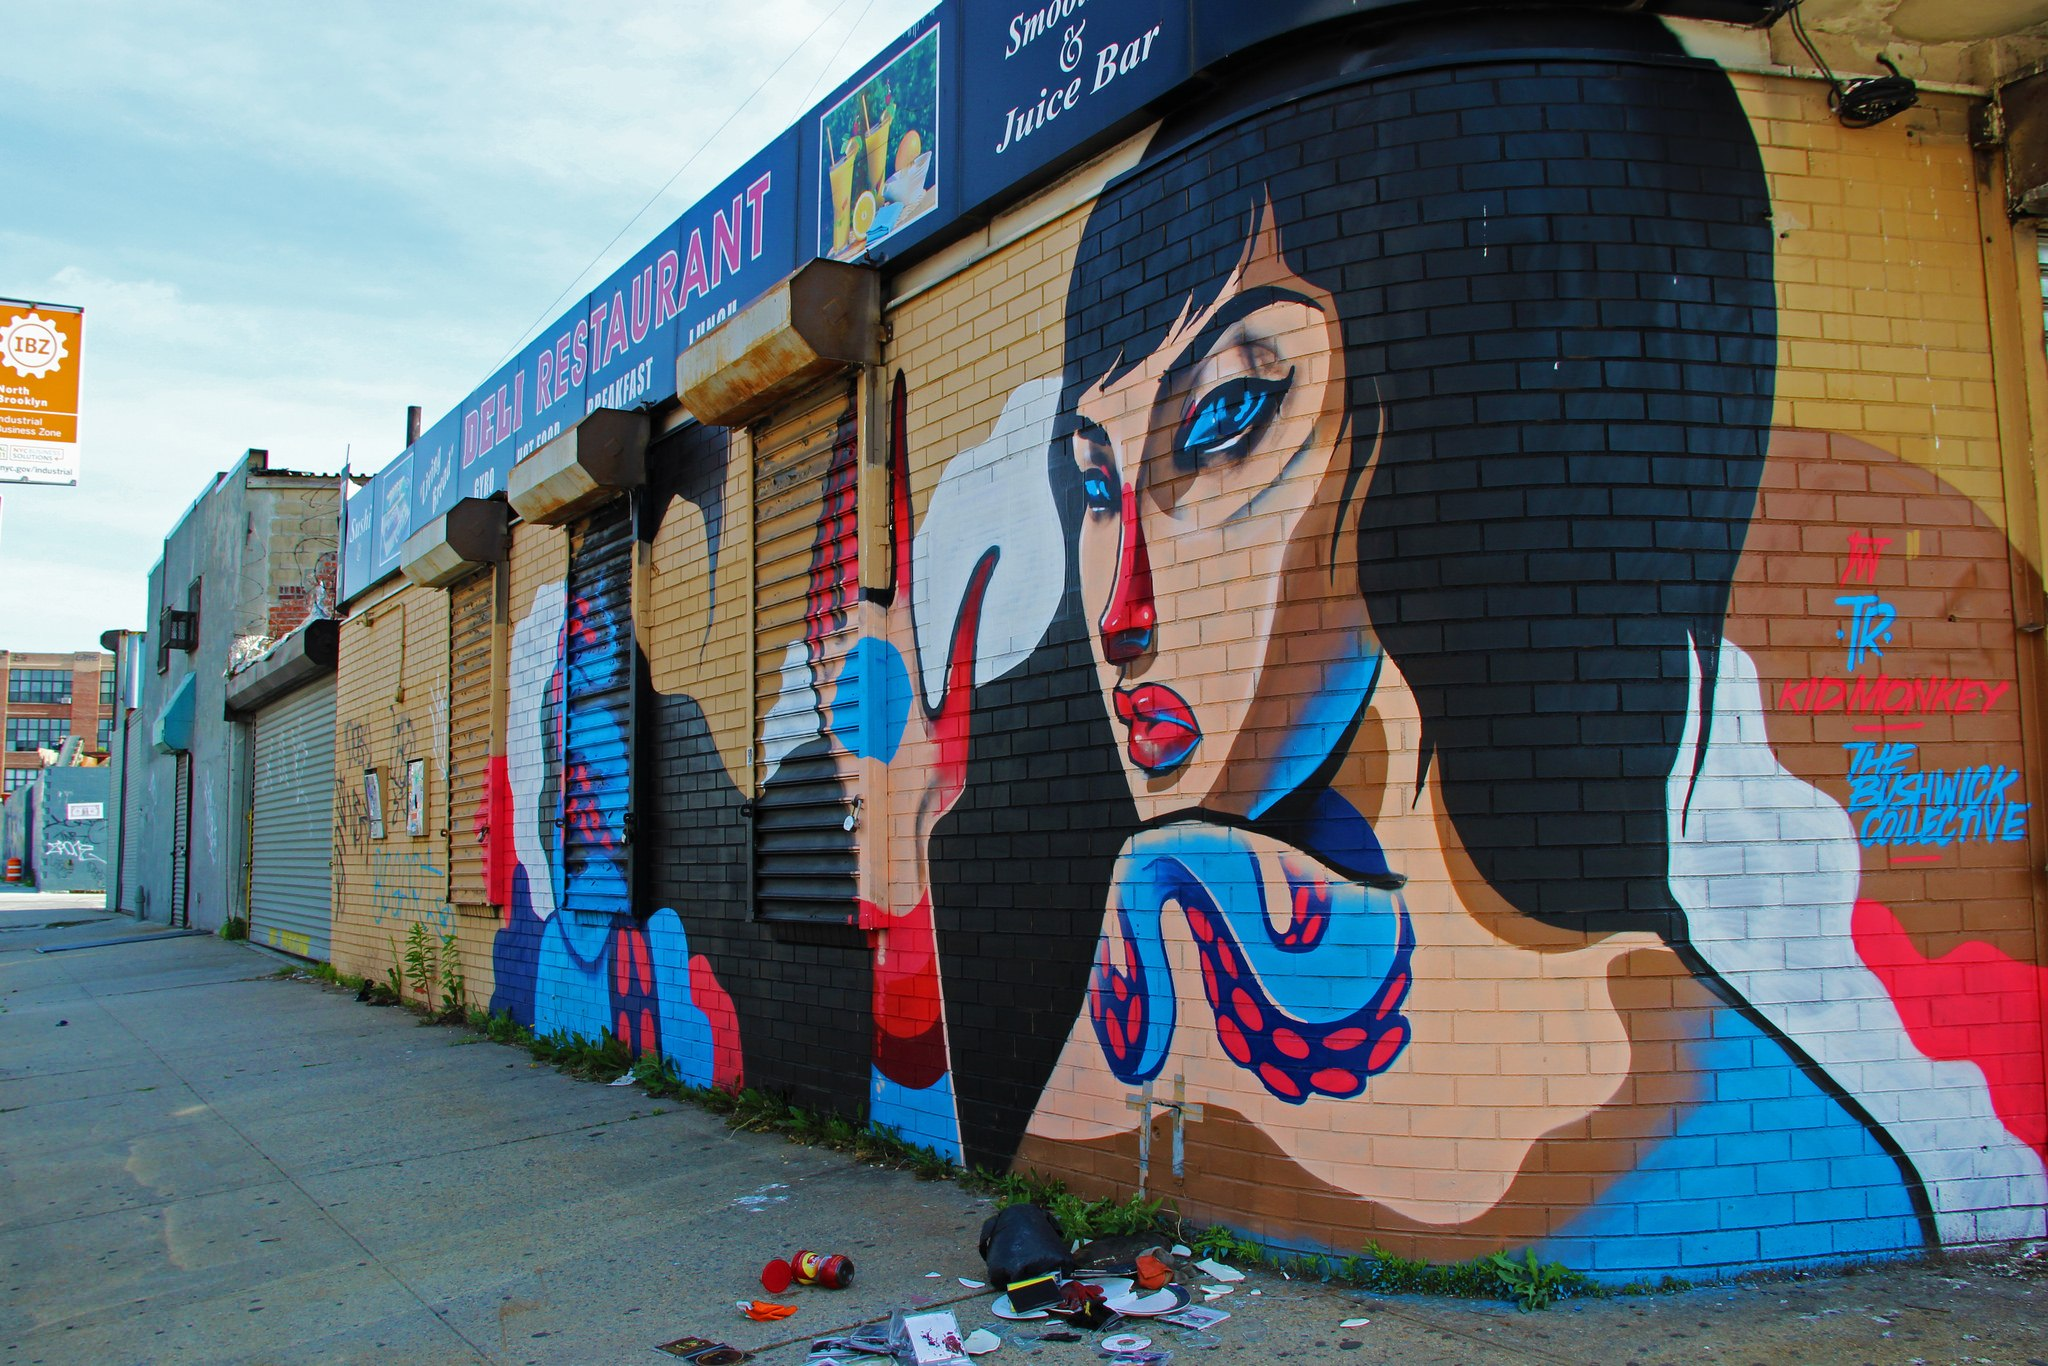 Bushwick art, Bushwick Collective